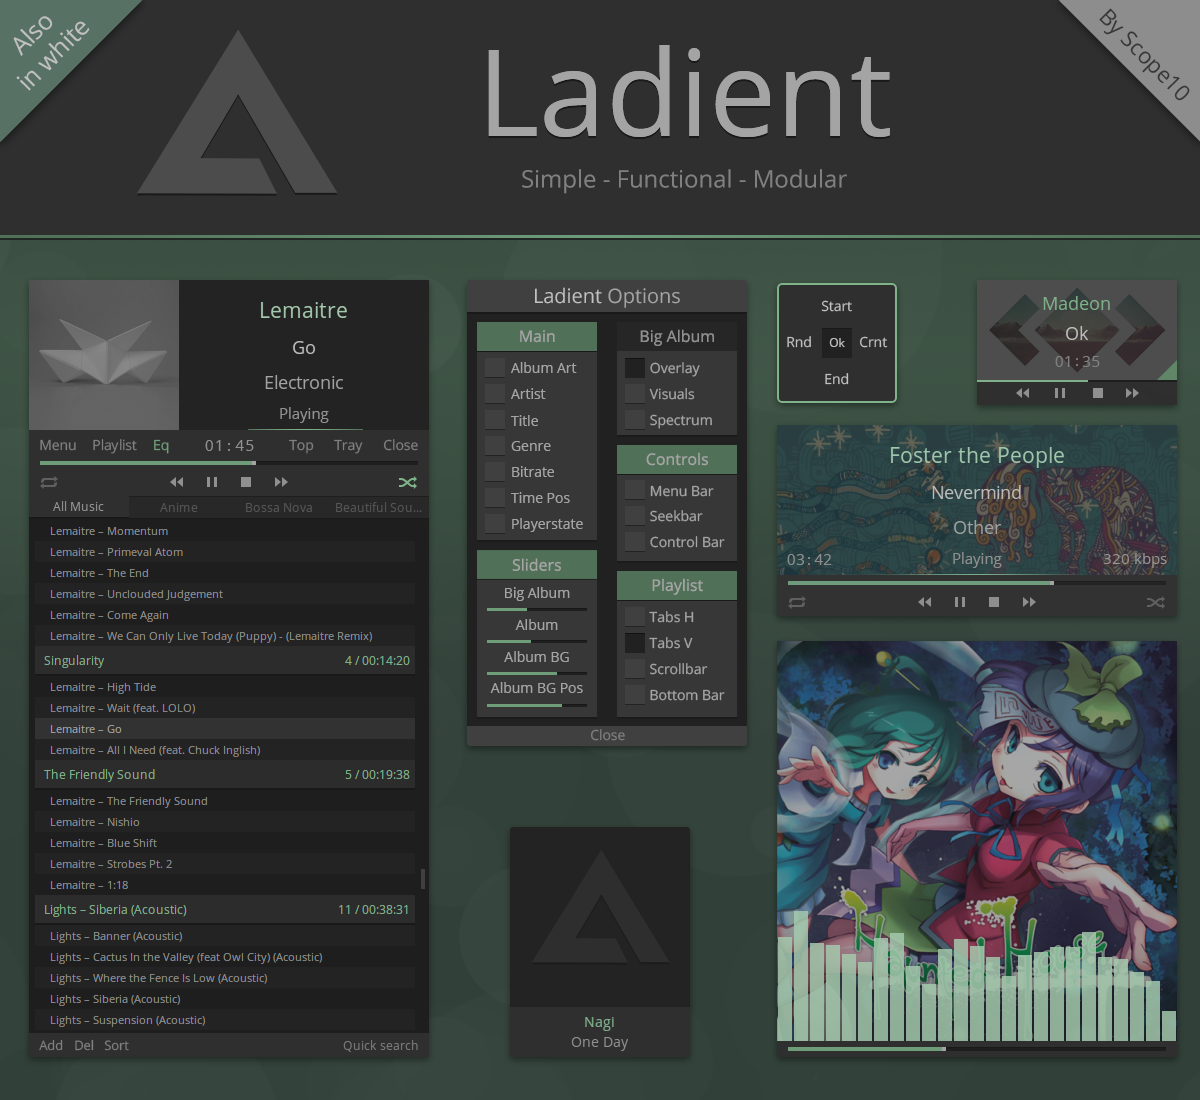 Ladient - AIMP 3.6 skin